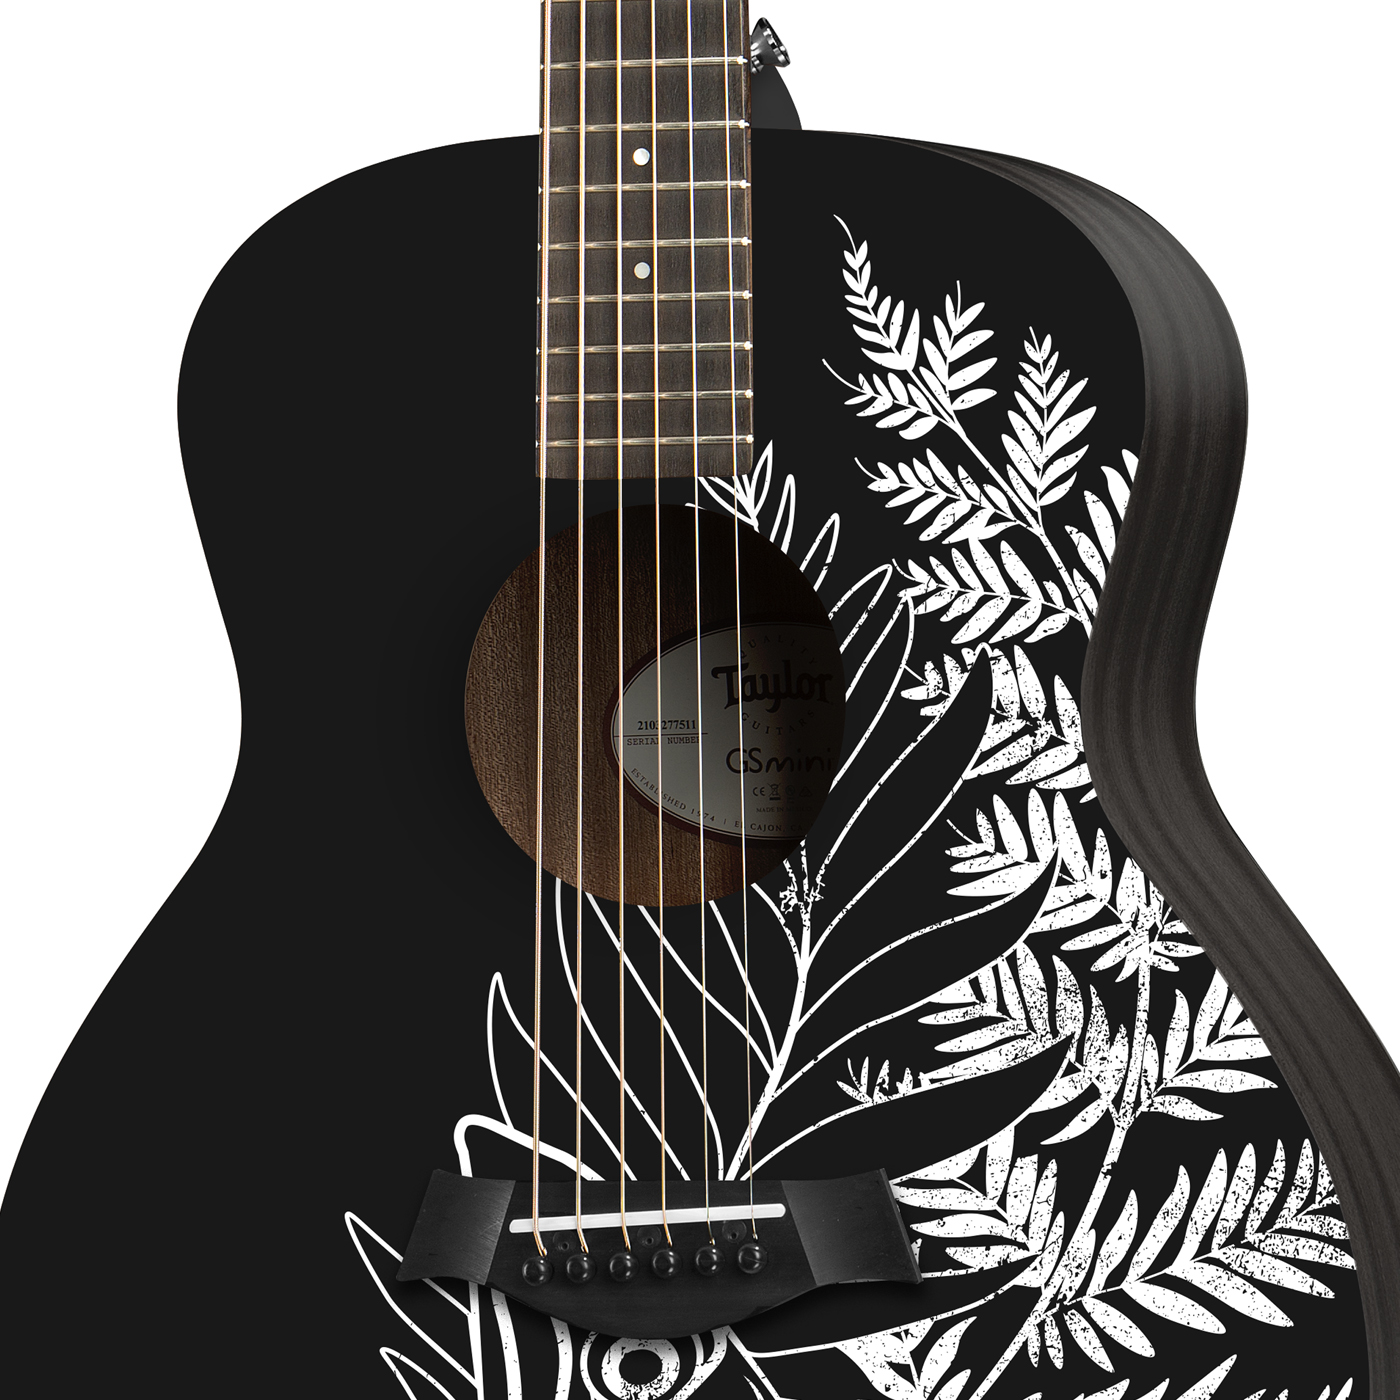 Glossy Decals Stickers Guitar Moth Set Inspired by The Last of Us Part II 2